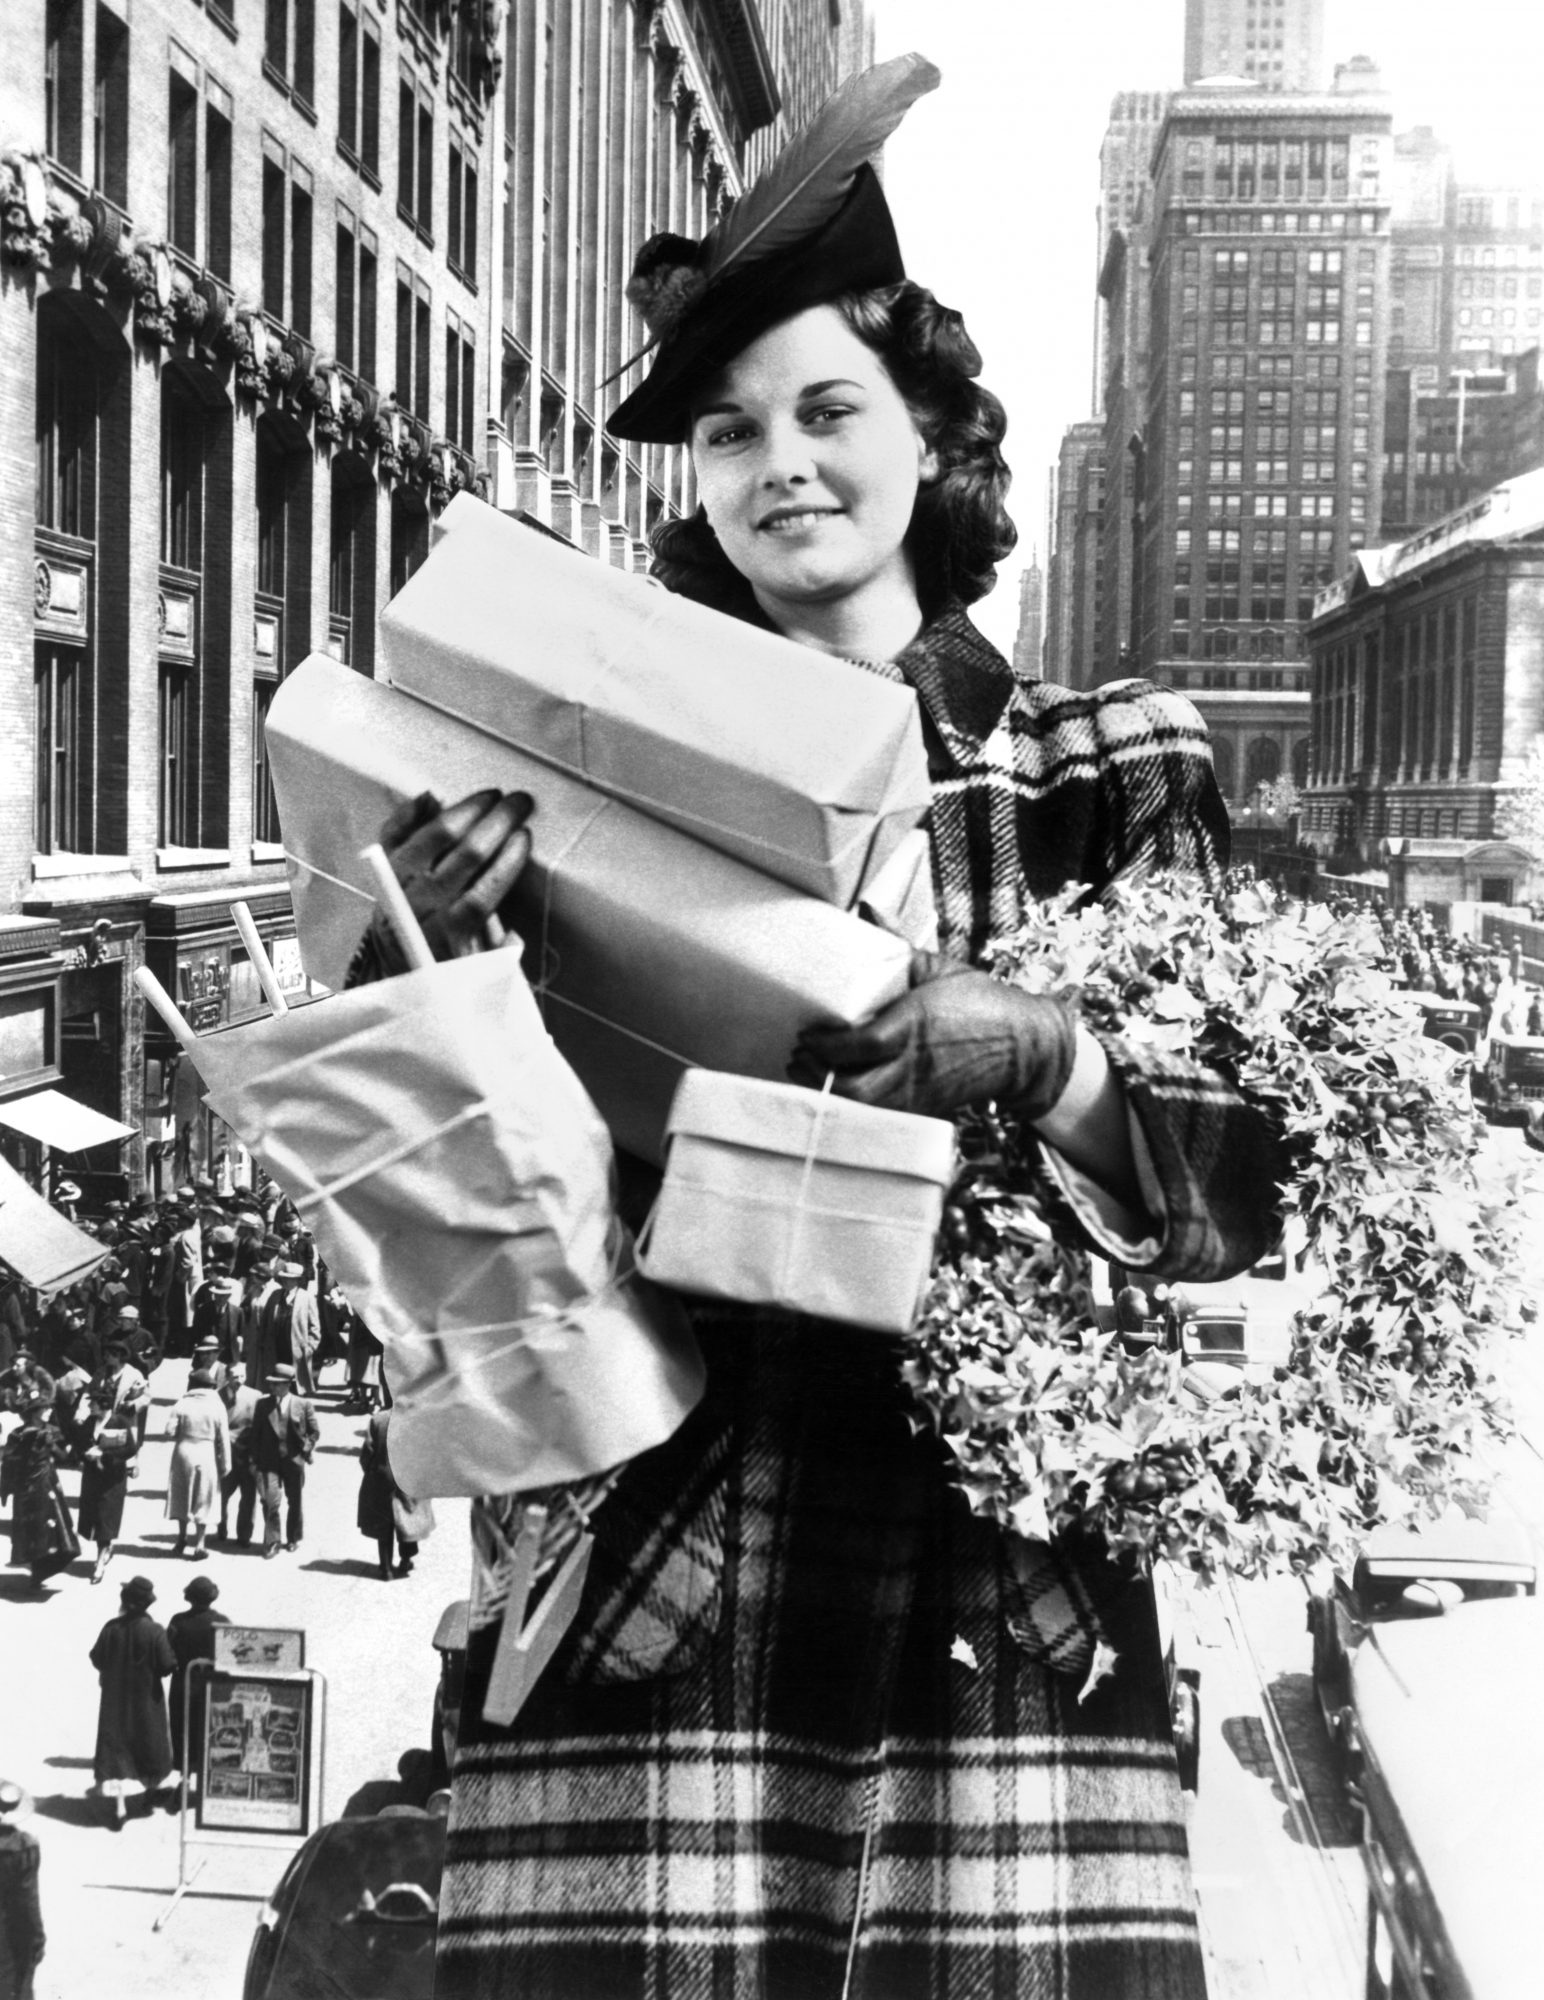 Woman carrying packages